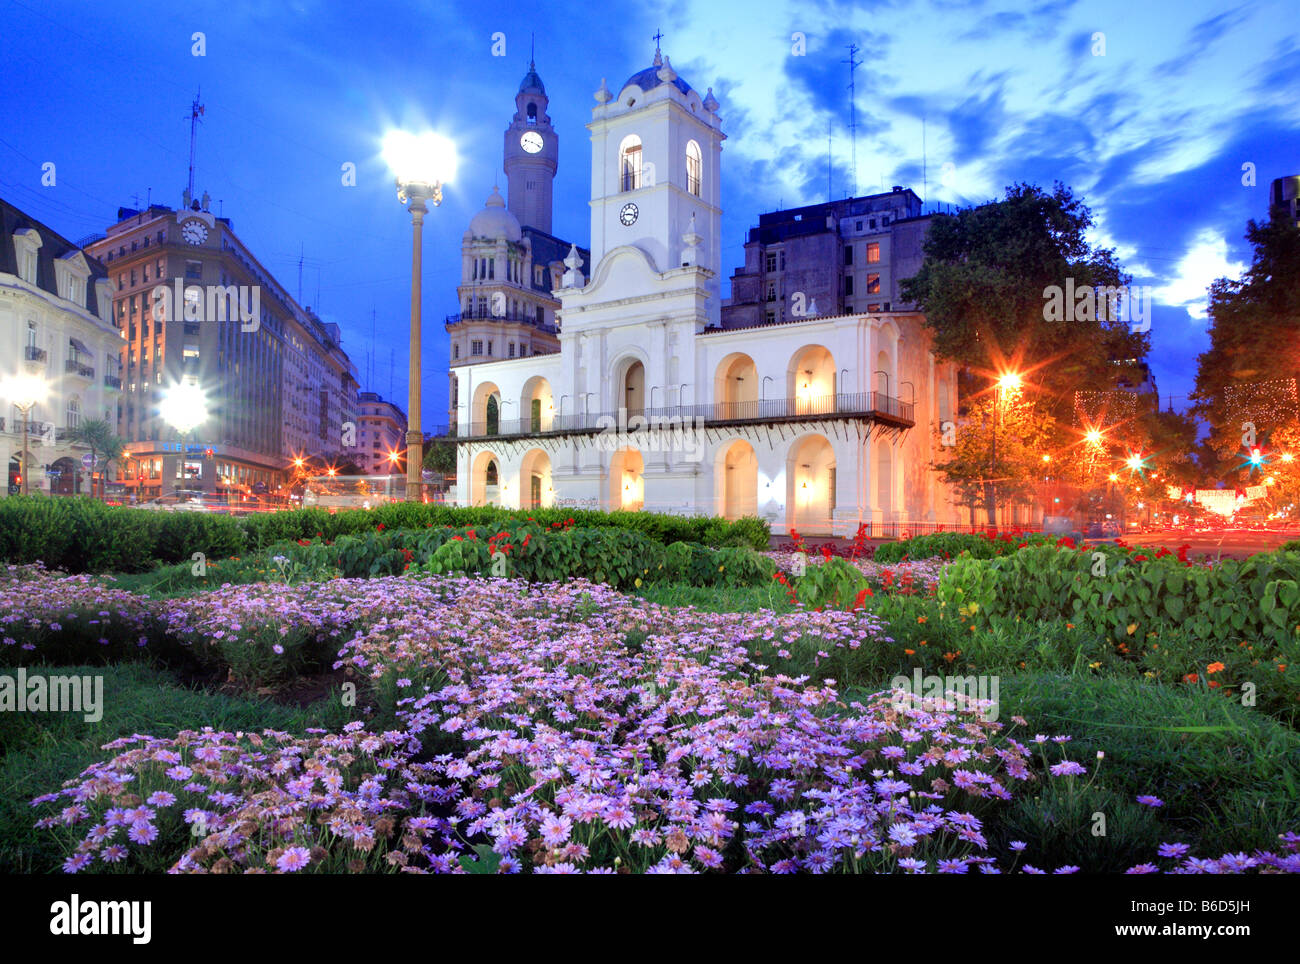 """National Cabildo building at """"Plaza de Mayo"""" (Mayo Square) in the dusk, Buenos Aires, Argentina - Stock Image"""